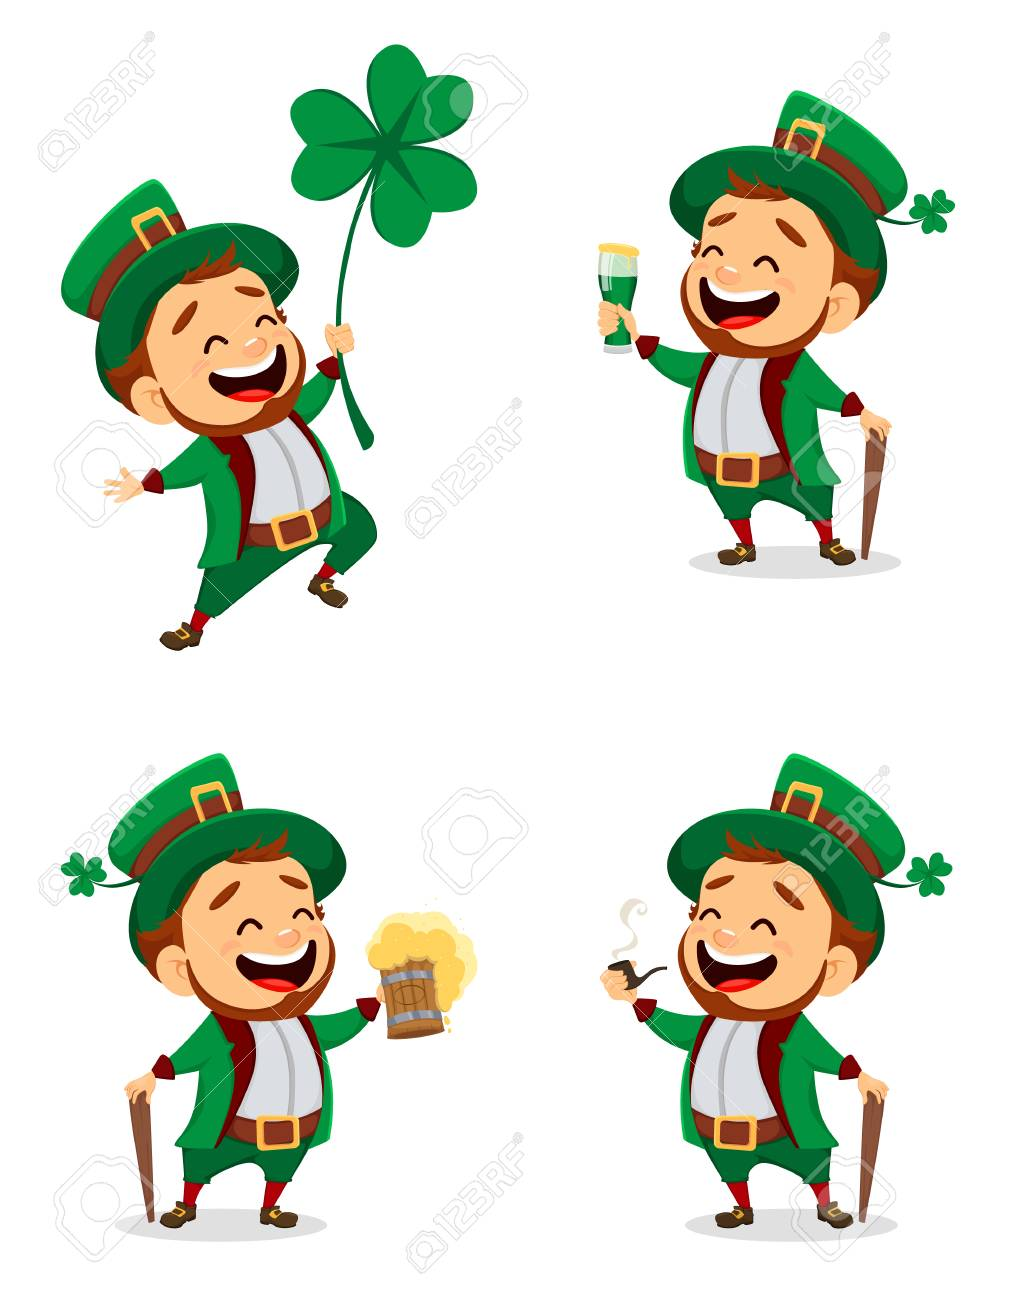 Happy Saint Patrick S Day Character With Green Hat Set Of Cartoon